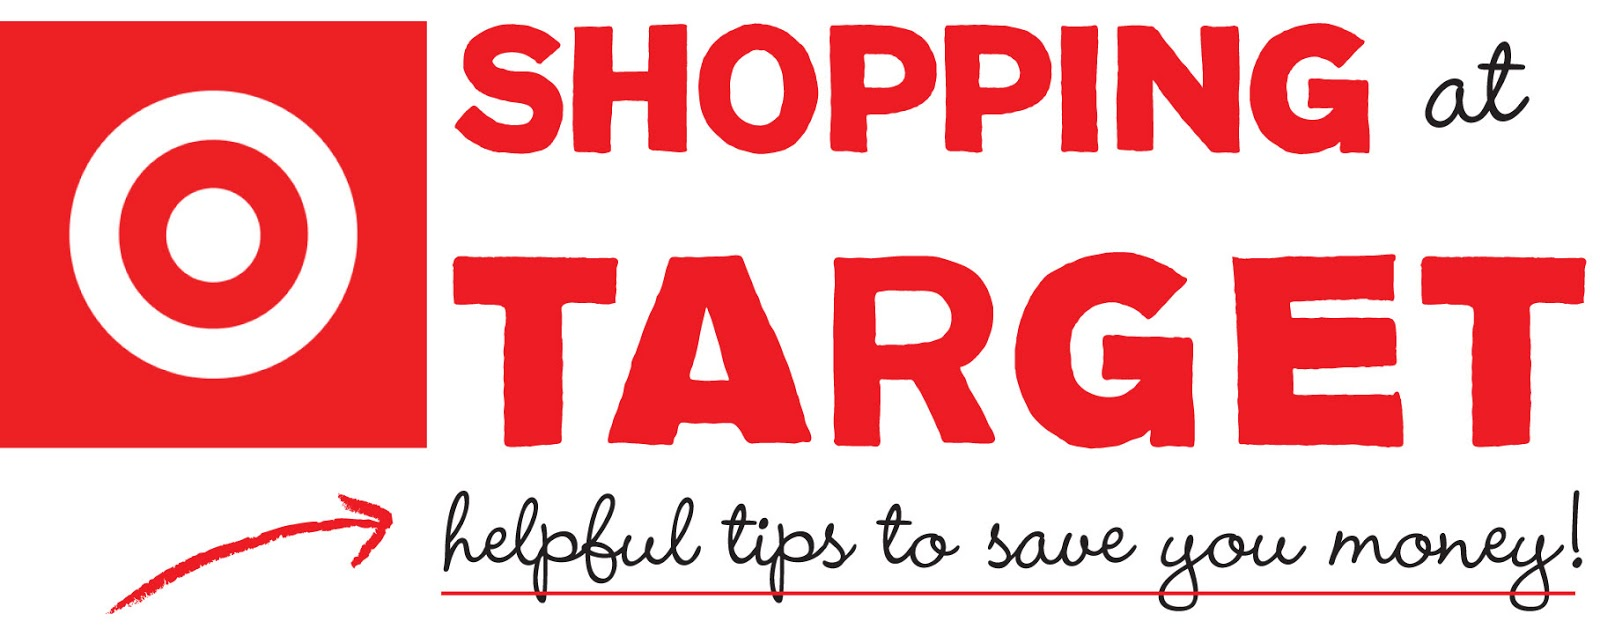 These are often high-value coupons, but you can save even more by stacking a Target coupon with a manufacturer's coupon. Get a savings trifecta by using a Target coupon, a manufacturer's coupon, and a Cartwheel deal at the same time. You could get an item for pennies—or even free if you plan it right.